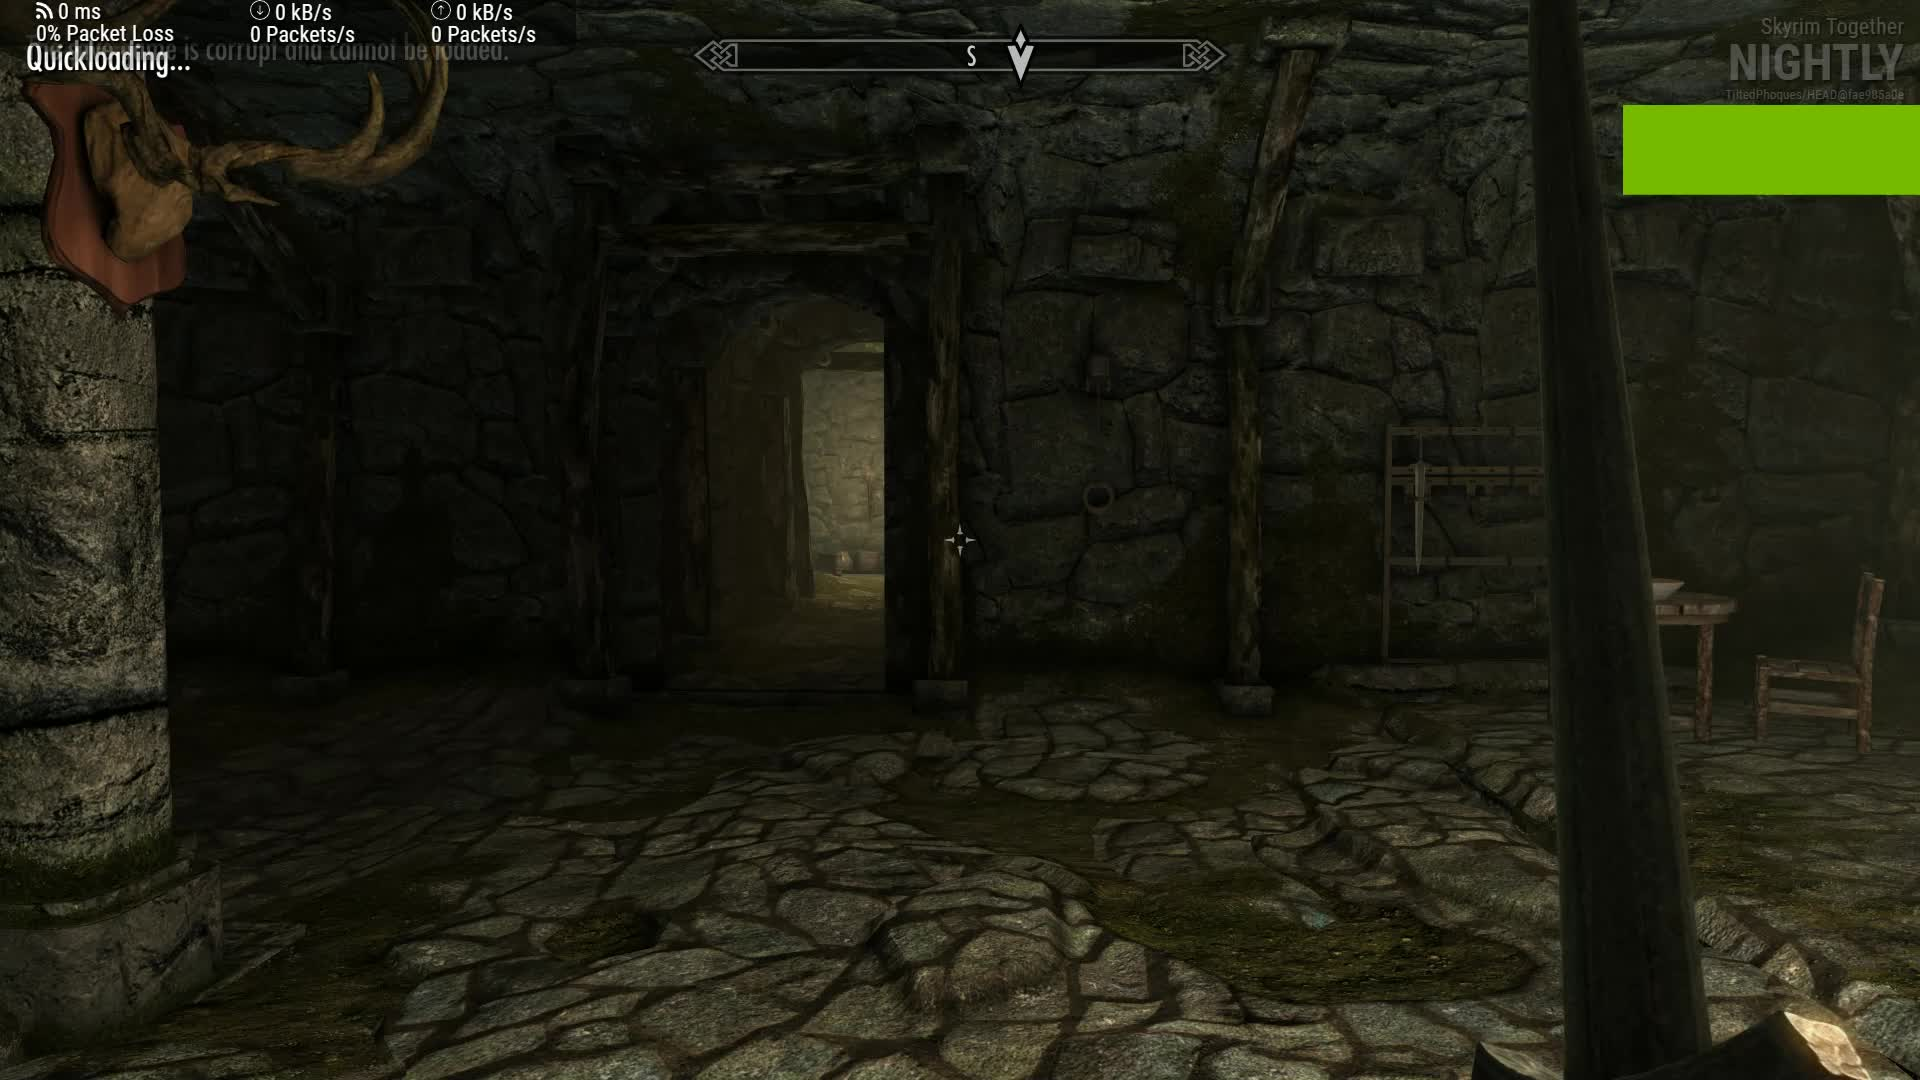 skyrim, skyrimtogether, Significant Improvements have been made GIFs